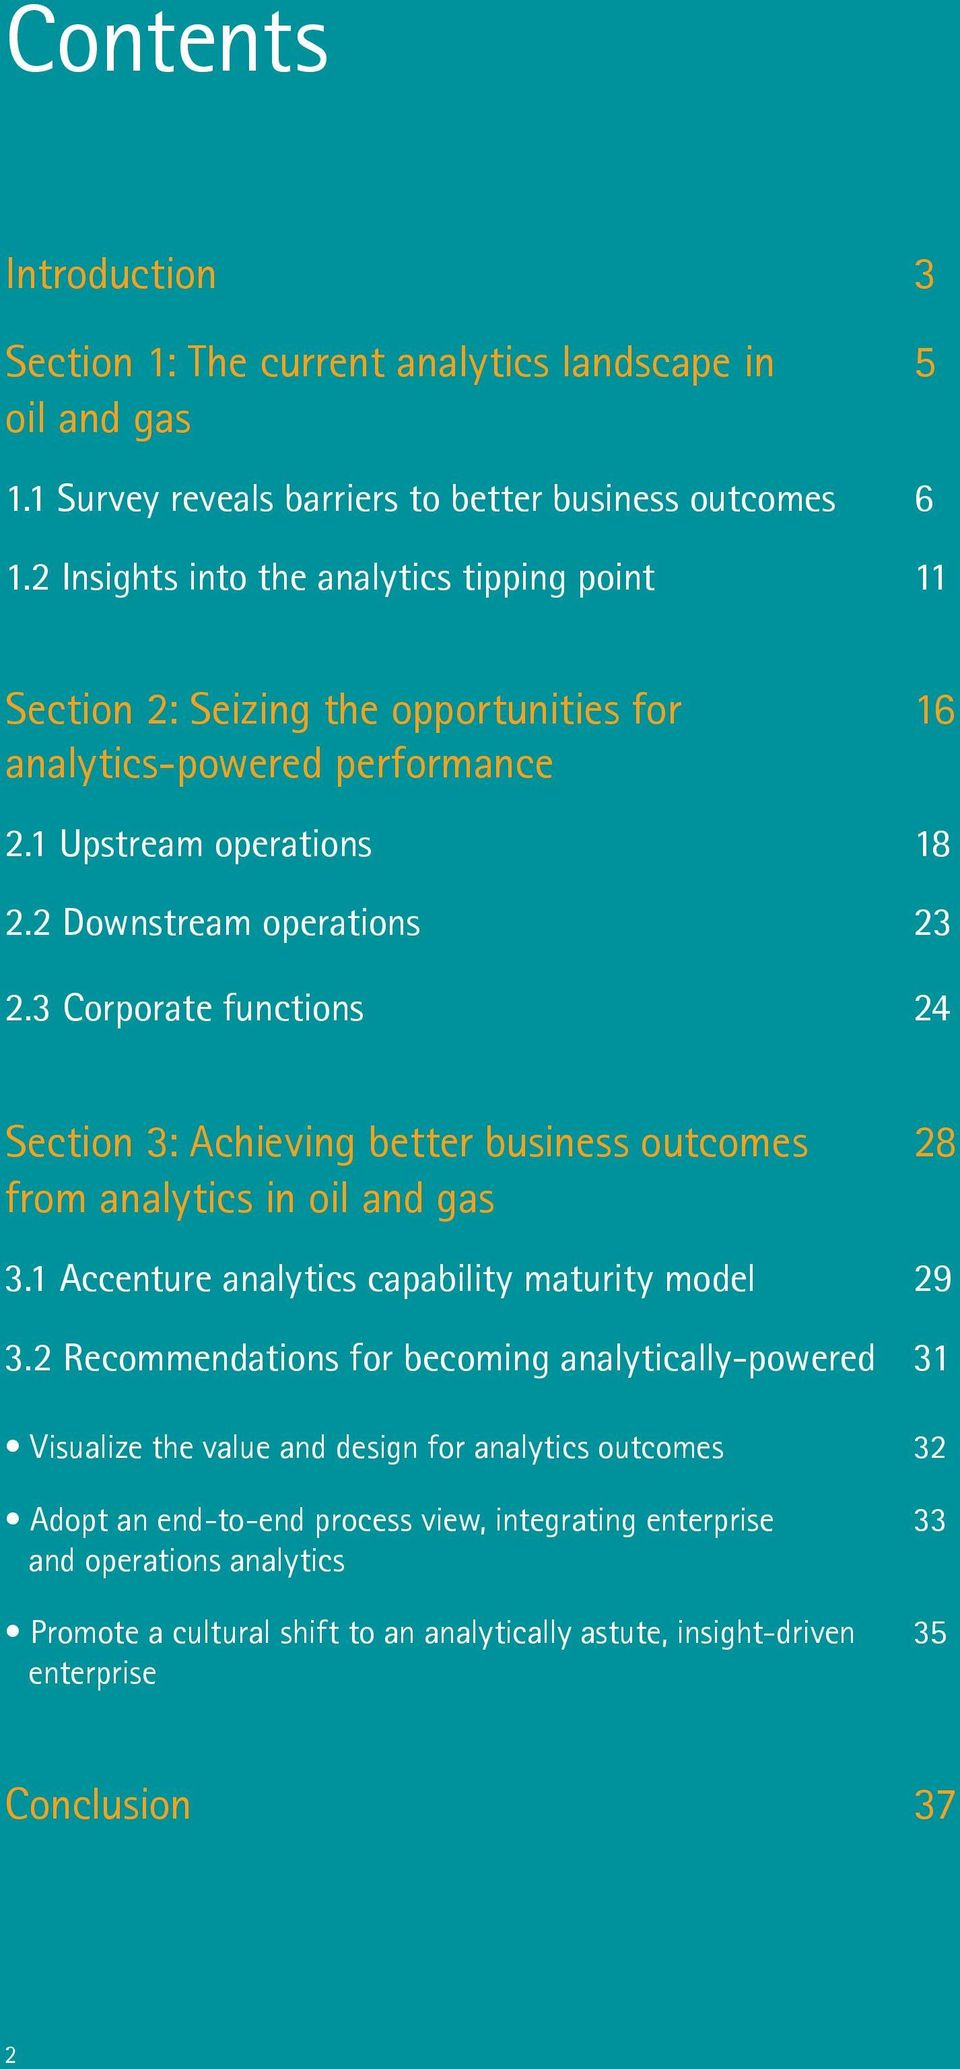 3 Corporate functions 24 Section 3: Achieving better business outcomes 28 from analytics in oil and gas 3.1 Accenture analytics capability maturity model 29 3.